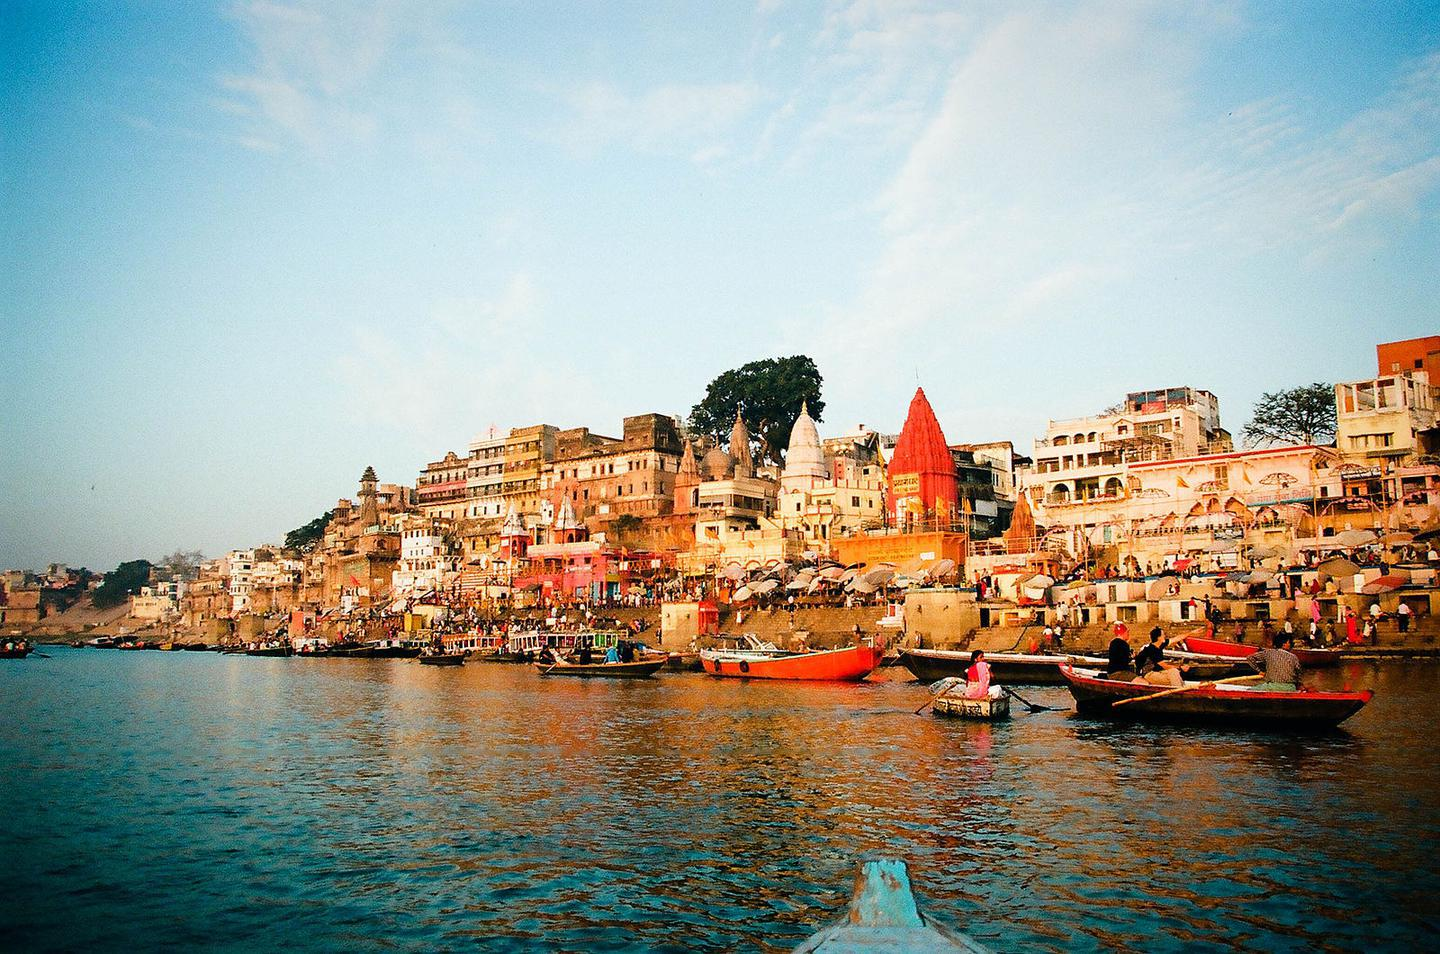 The Ganges River in Varanasi, India